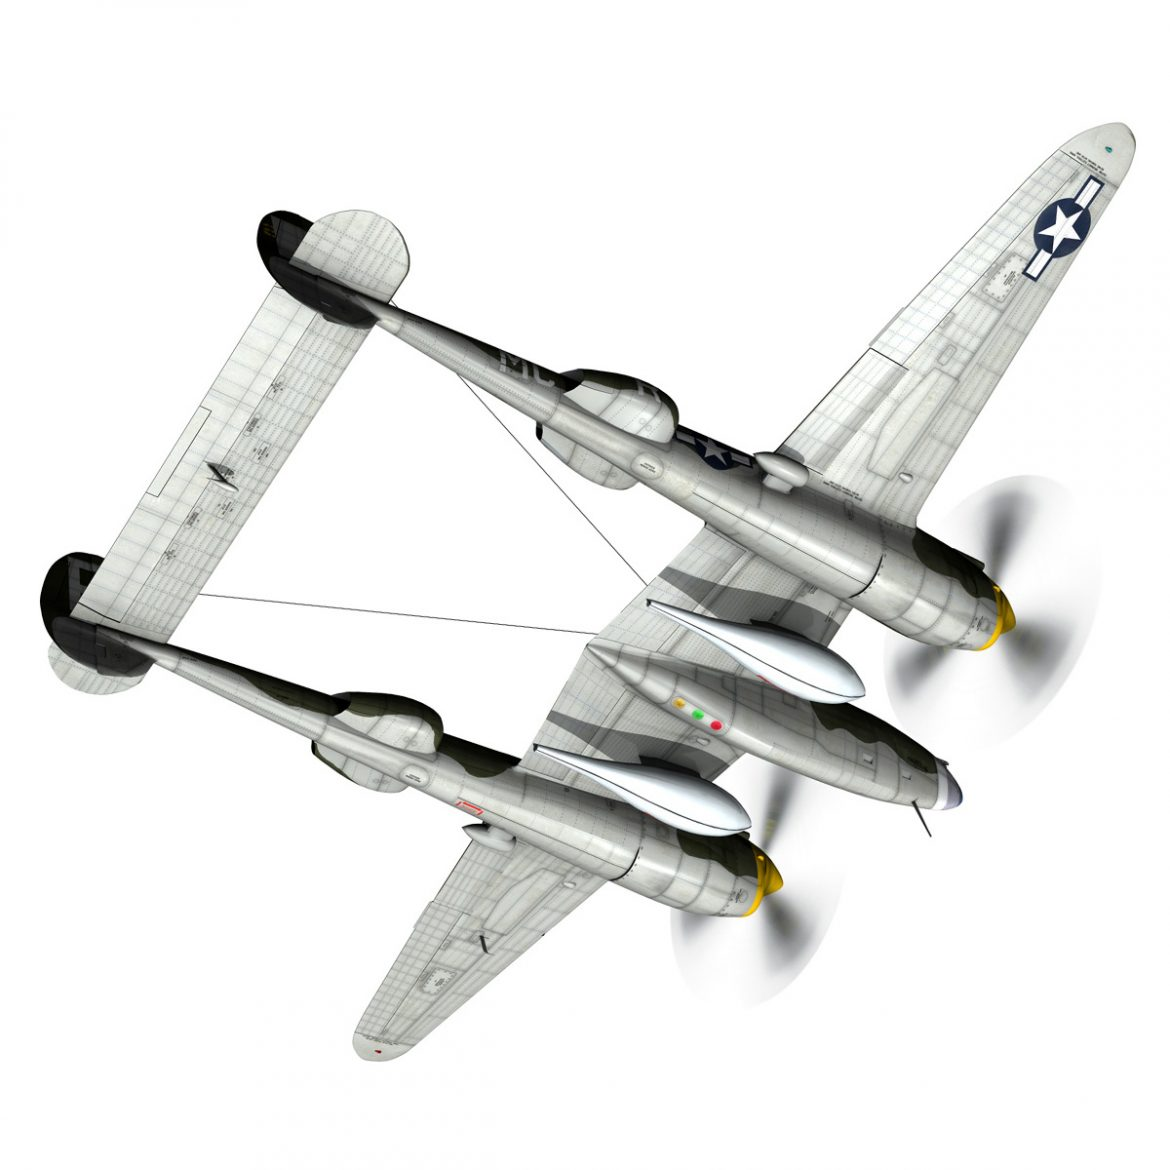 lockheed p-38 lightning – gentle annie 3d model fbx c4d lwo obj 300086